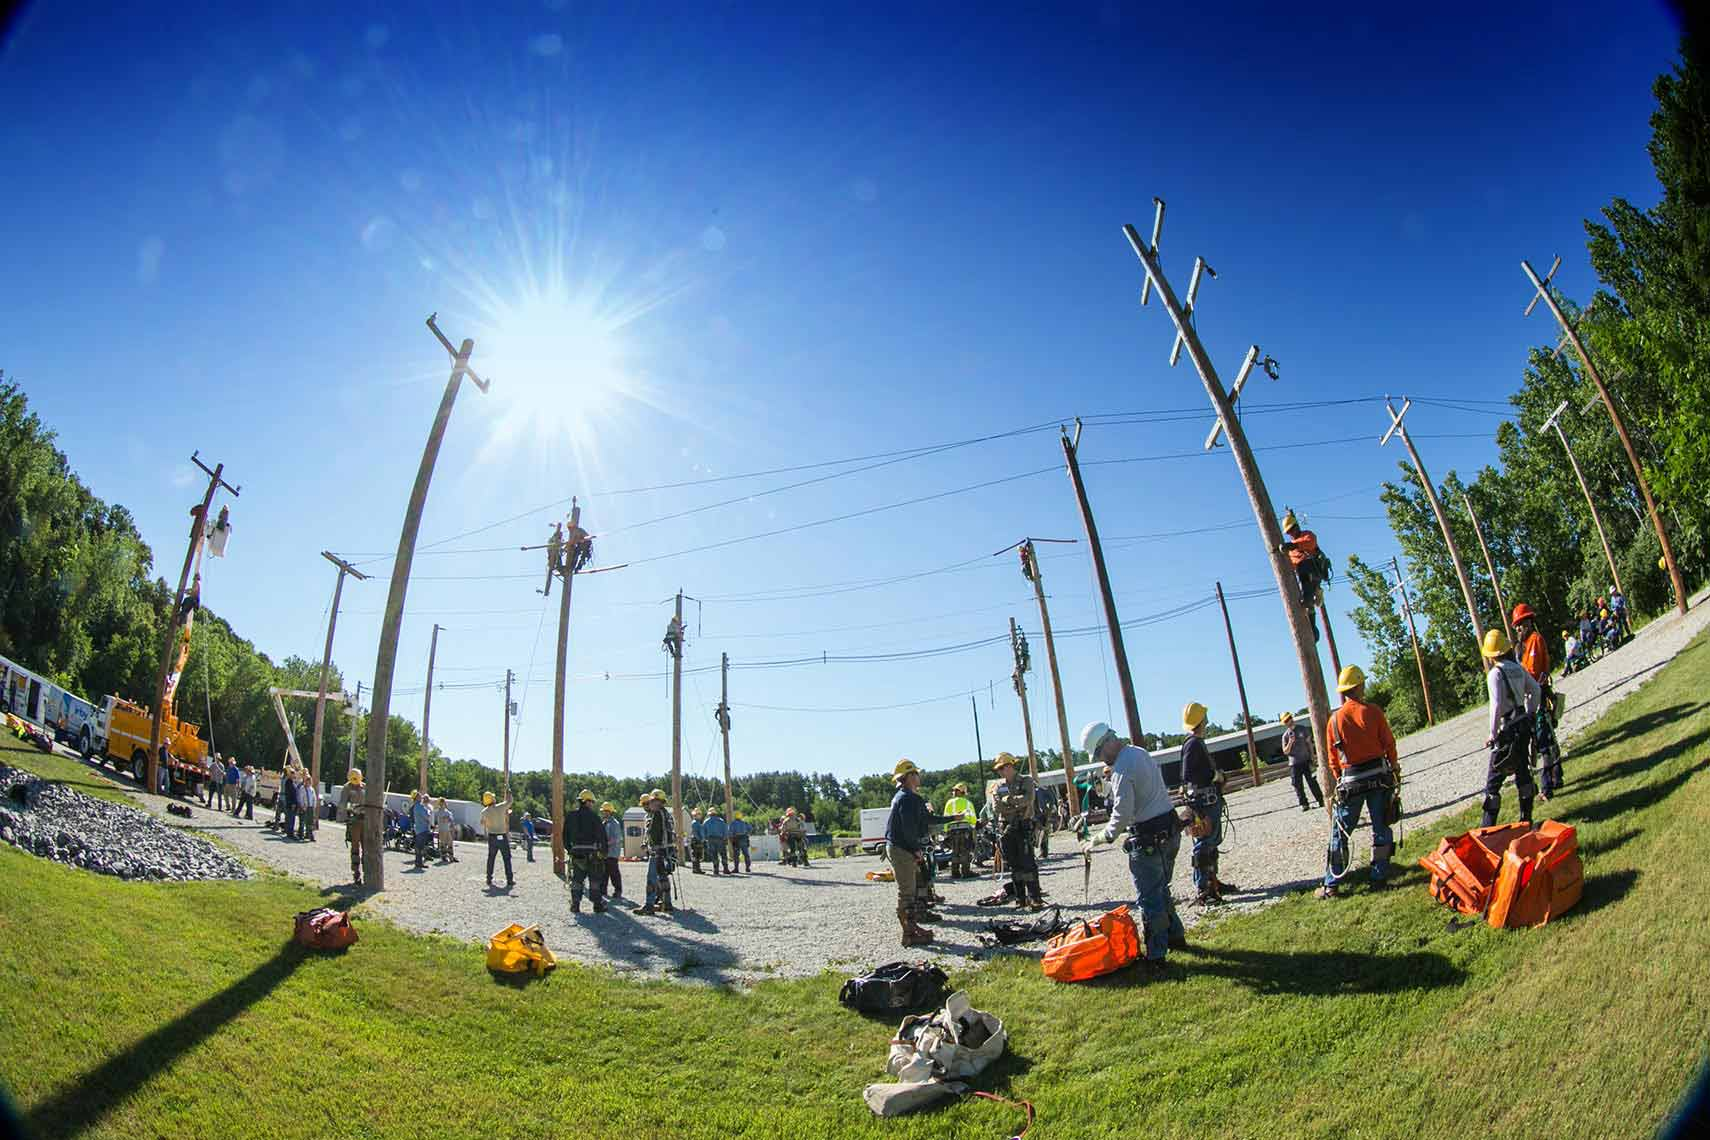 Wide Angle View of Lineworker and Poles at Rodeo Day Event